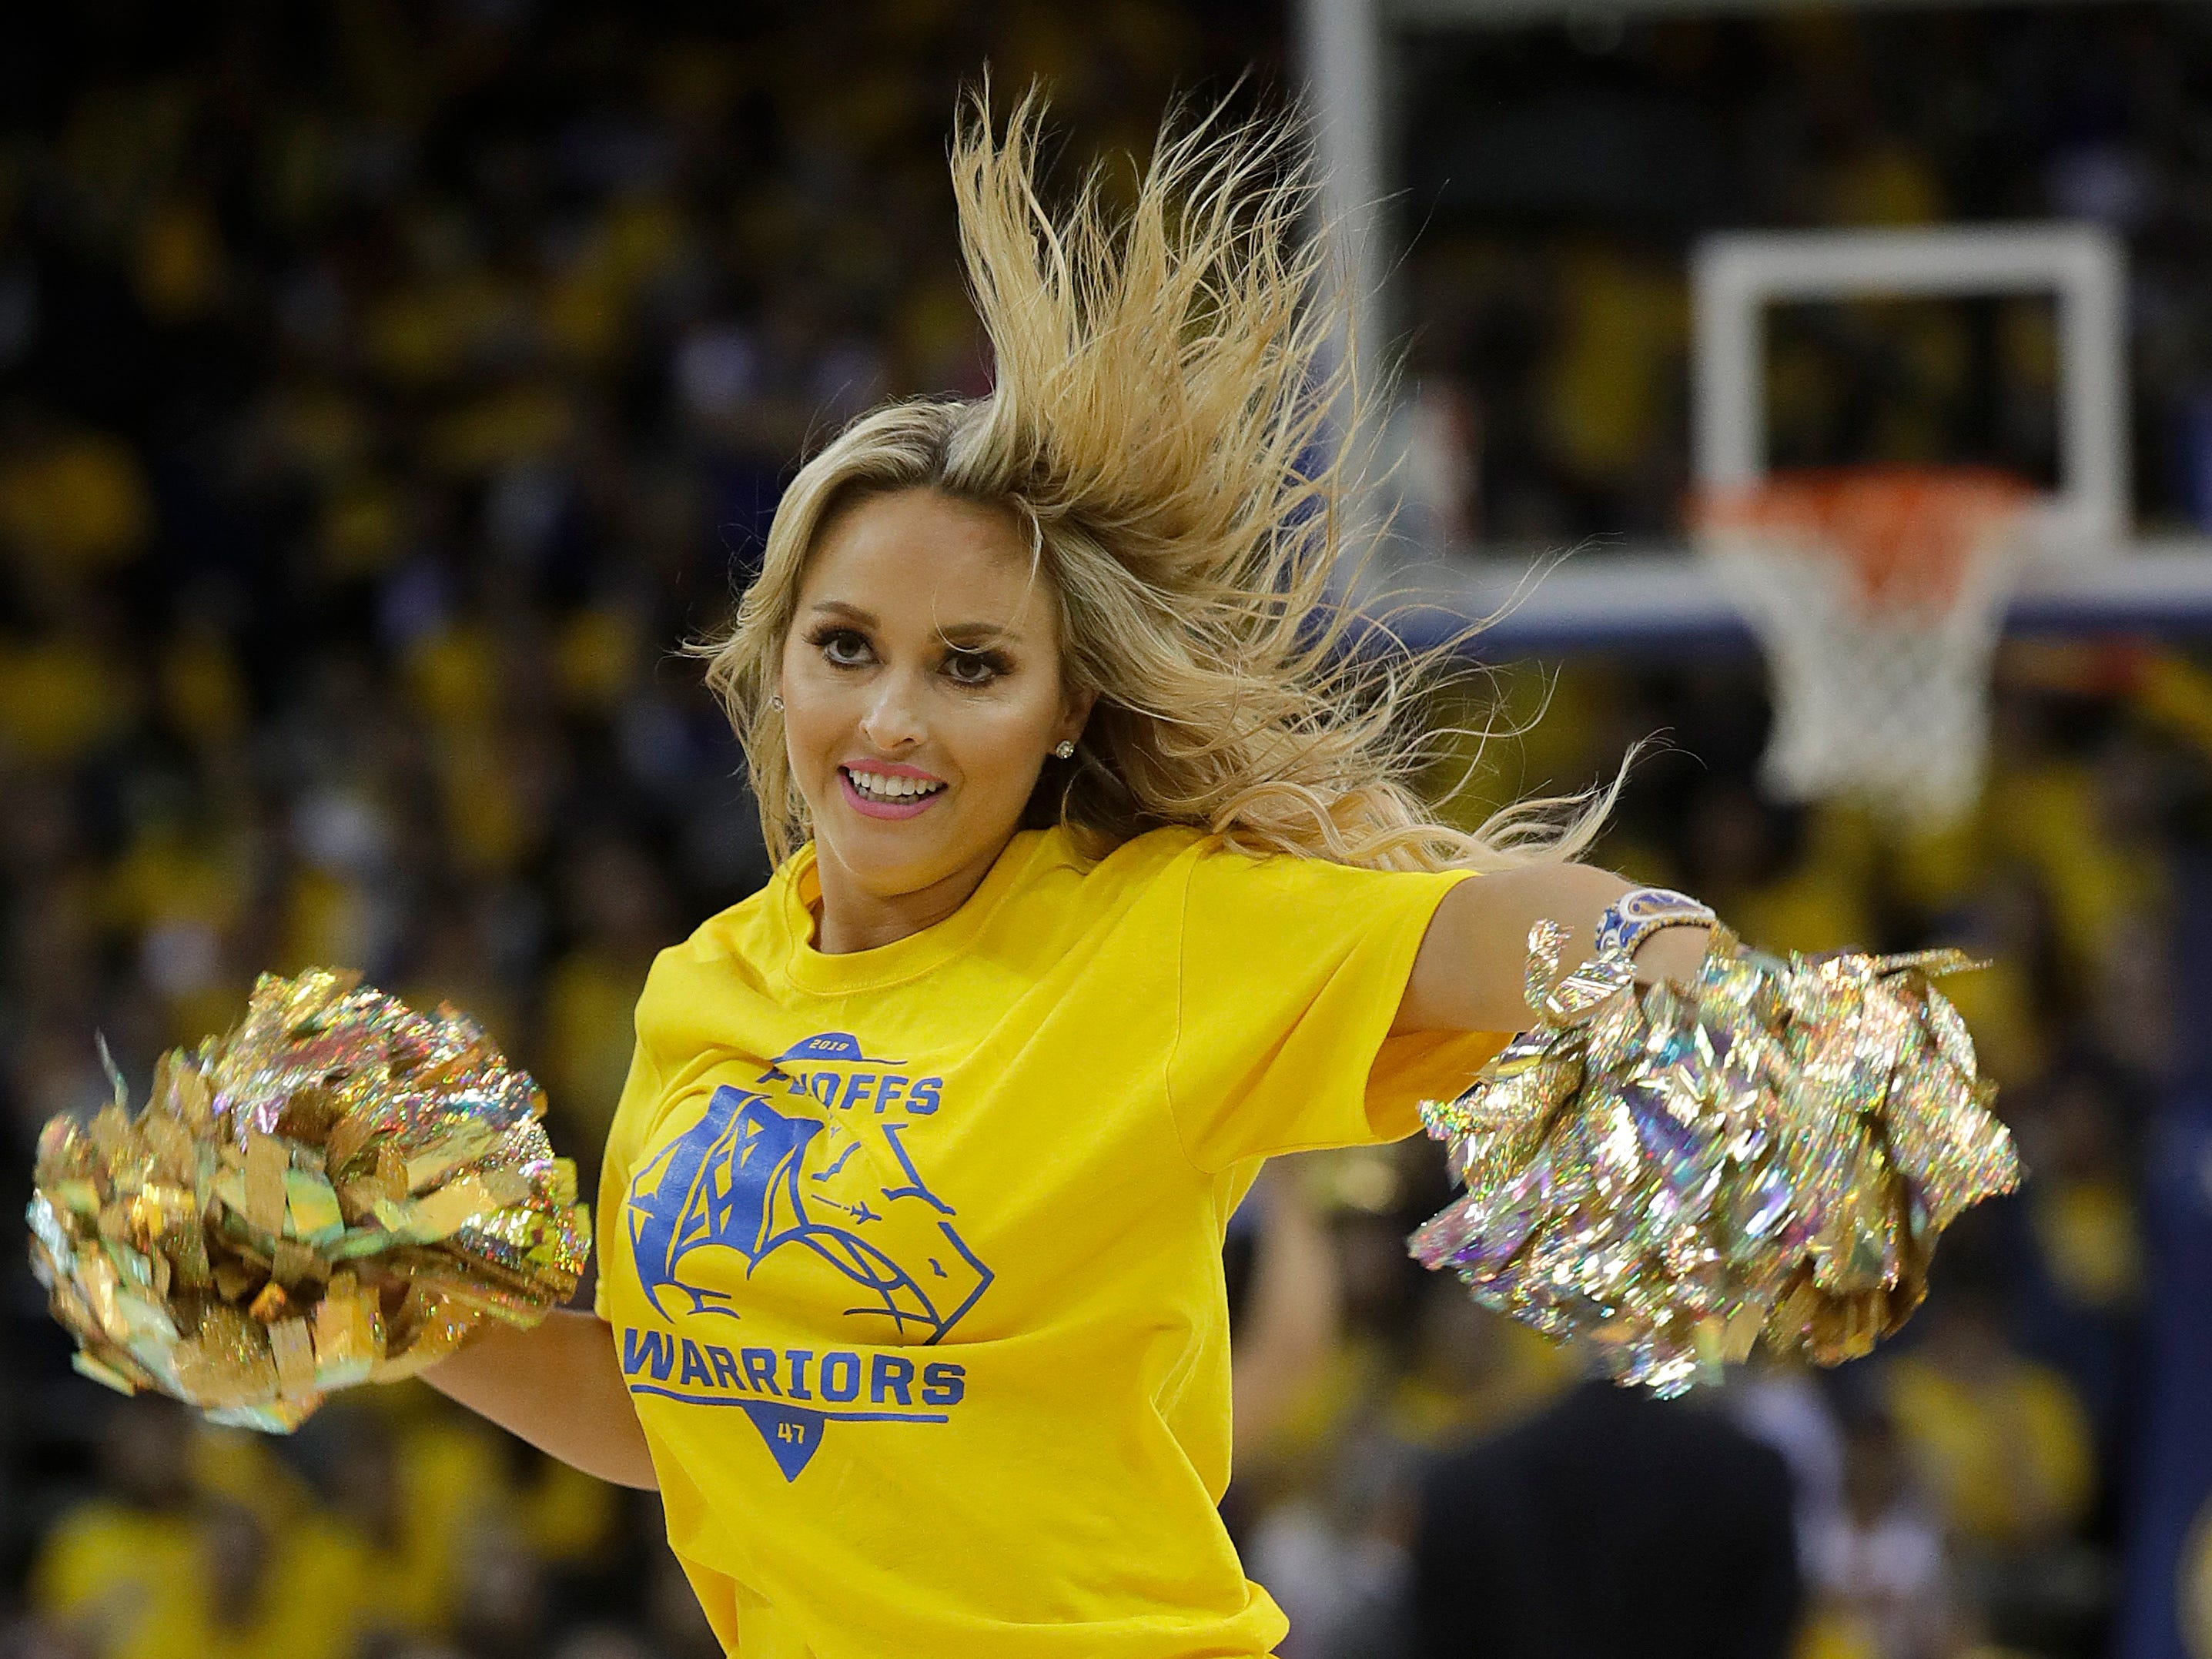 April 15: A Warriors cheerleader performs during the second half of Game 2 against the Clippers.